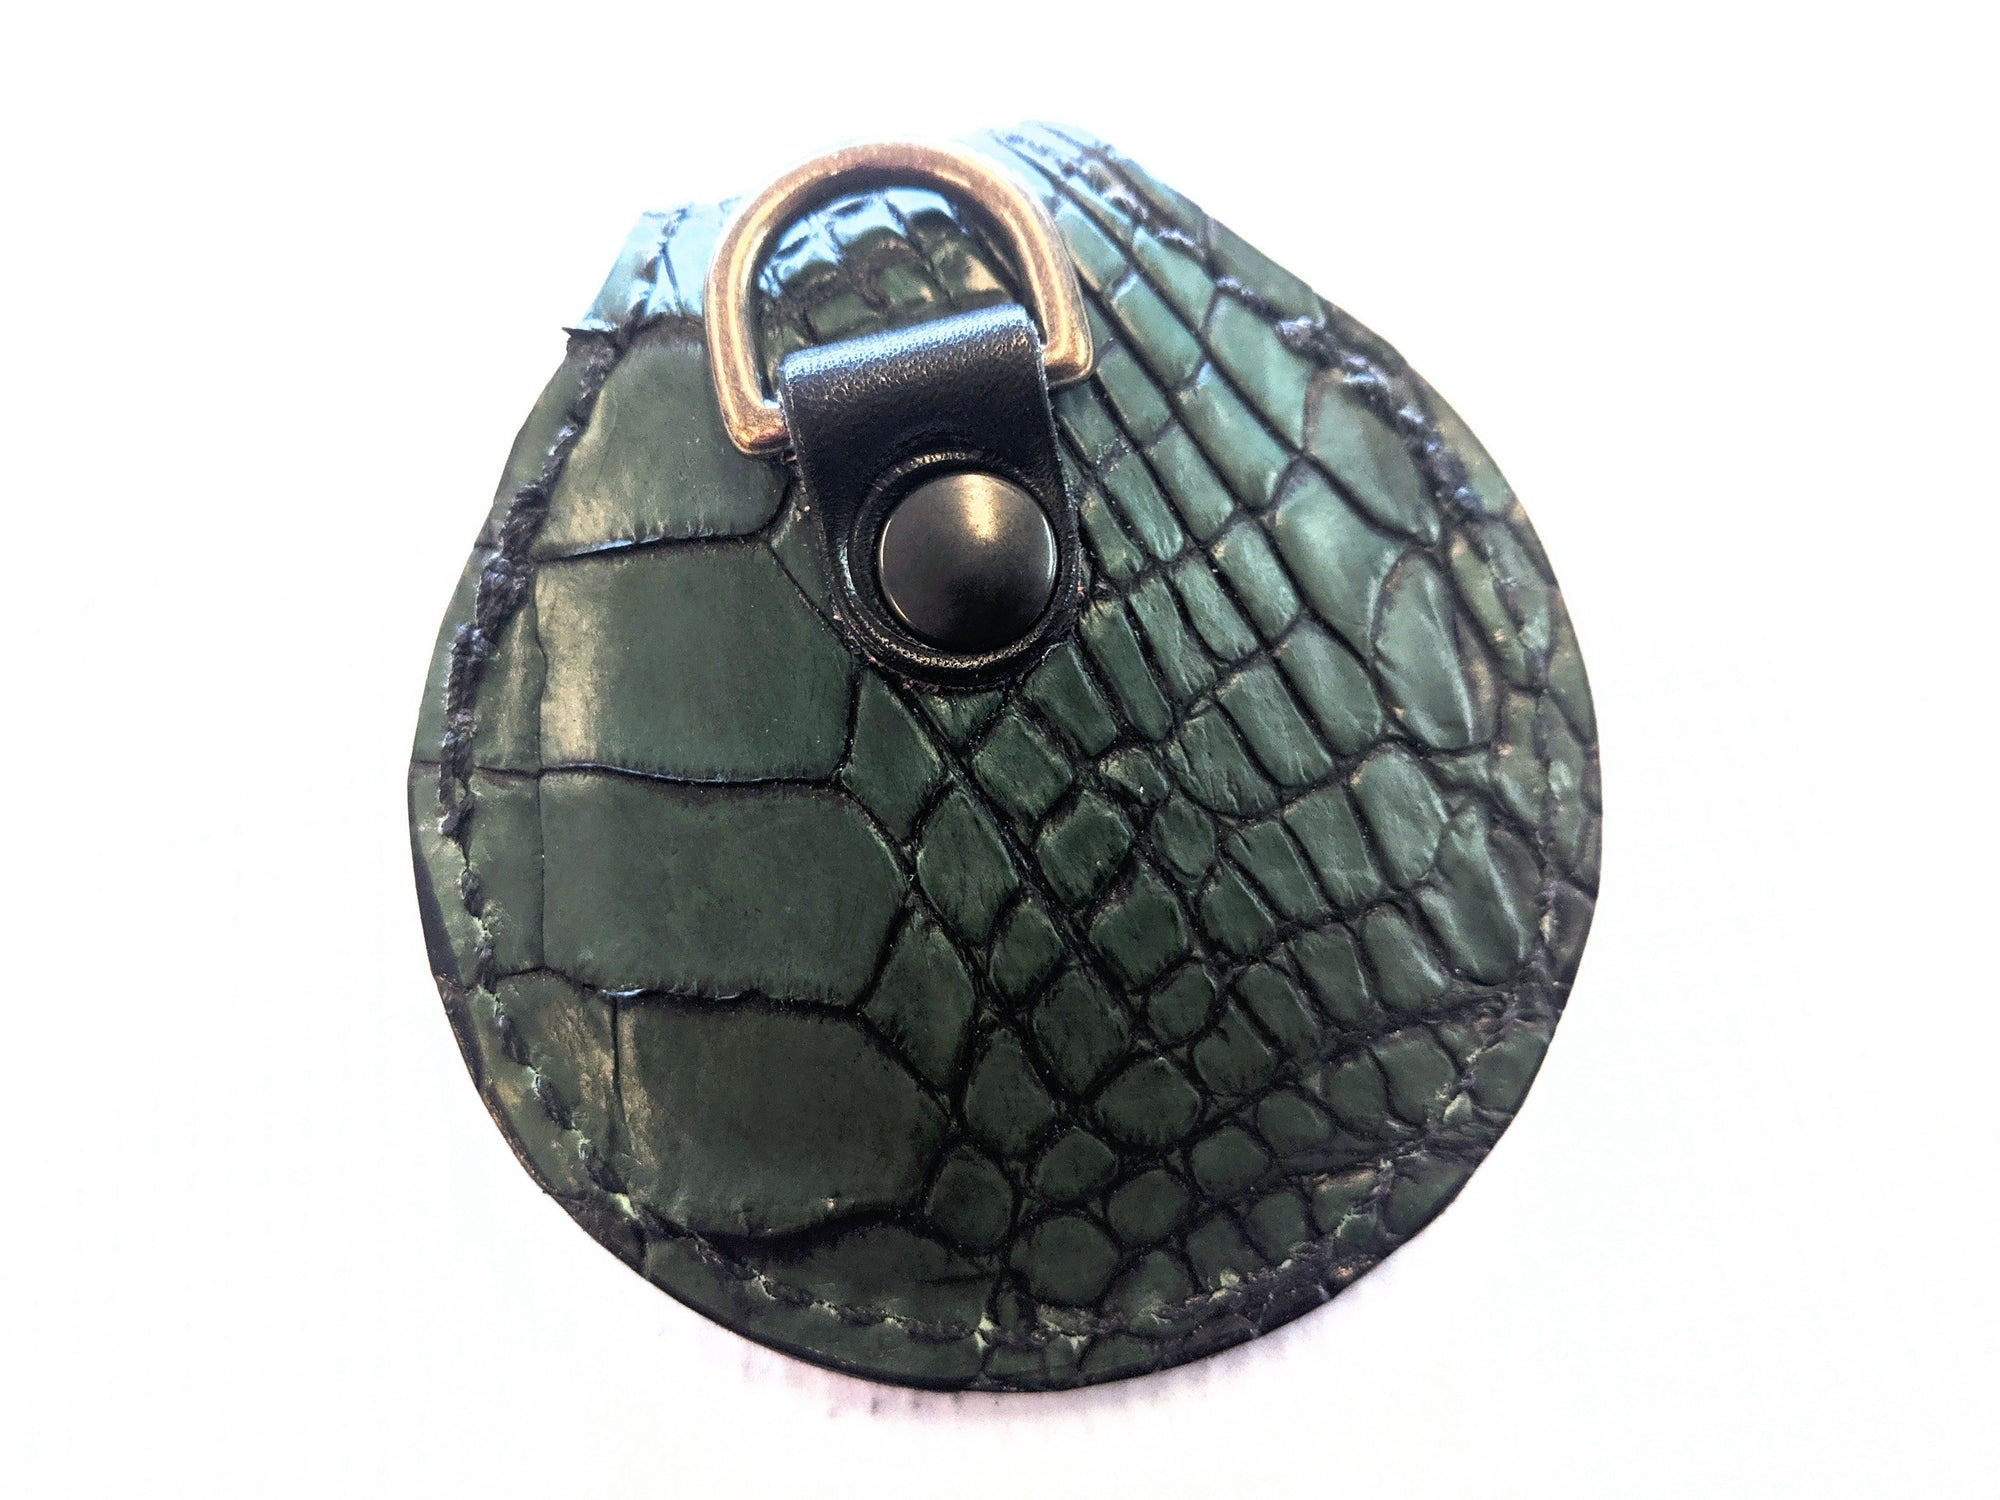 Harley-Davidson Remote Alarm Key Fob - Forest Green Alligator - Anvil Customs